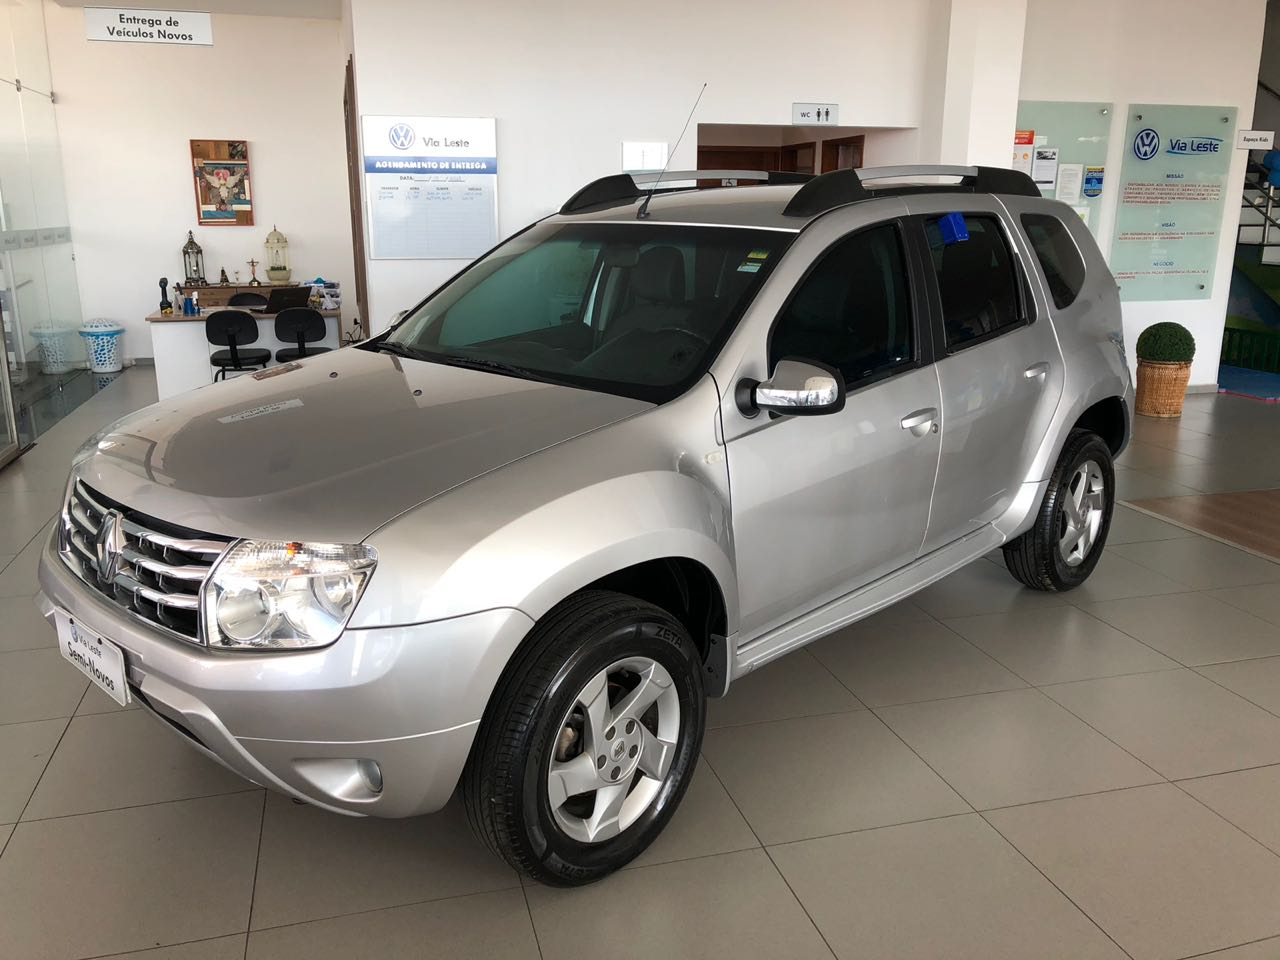 RENAULT DUSTER<br>R$ 42.900,00